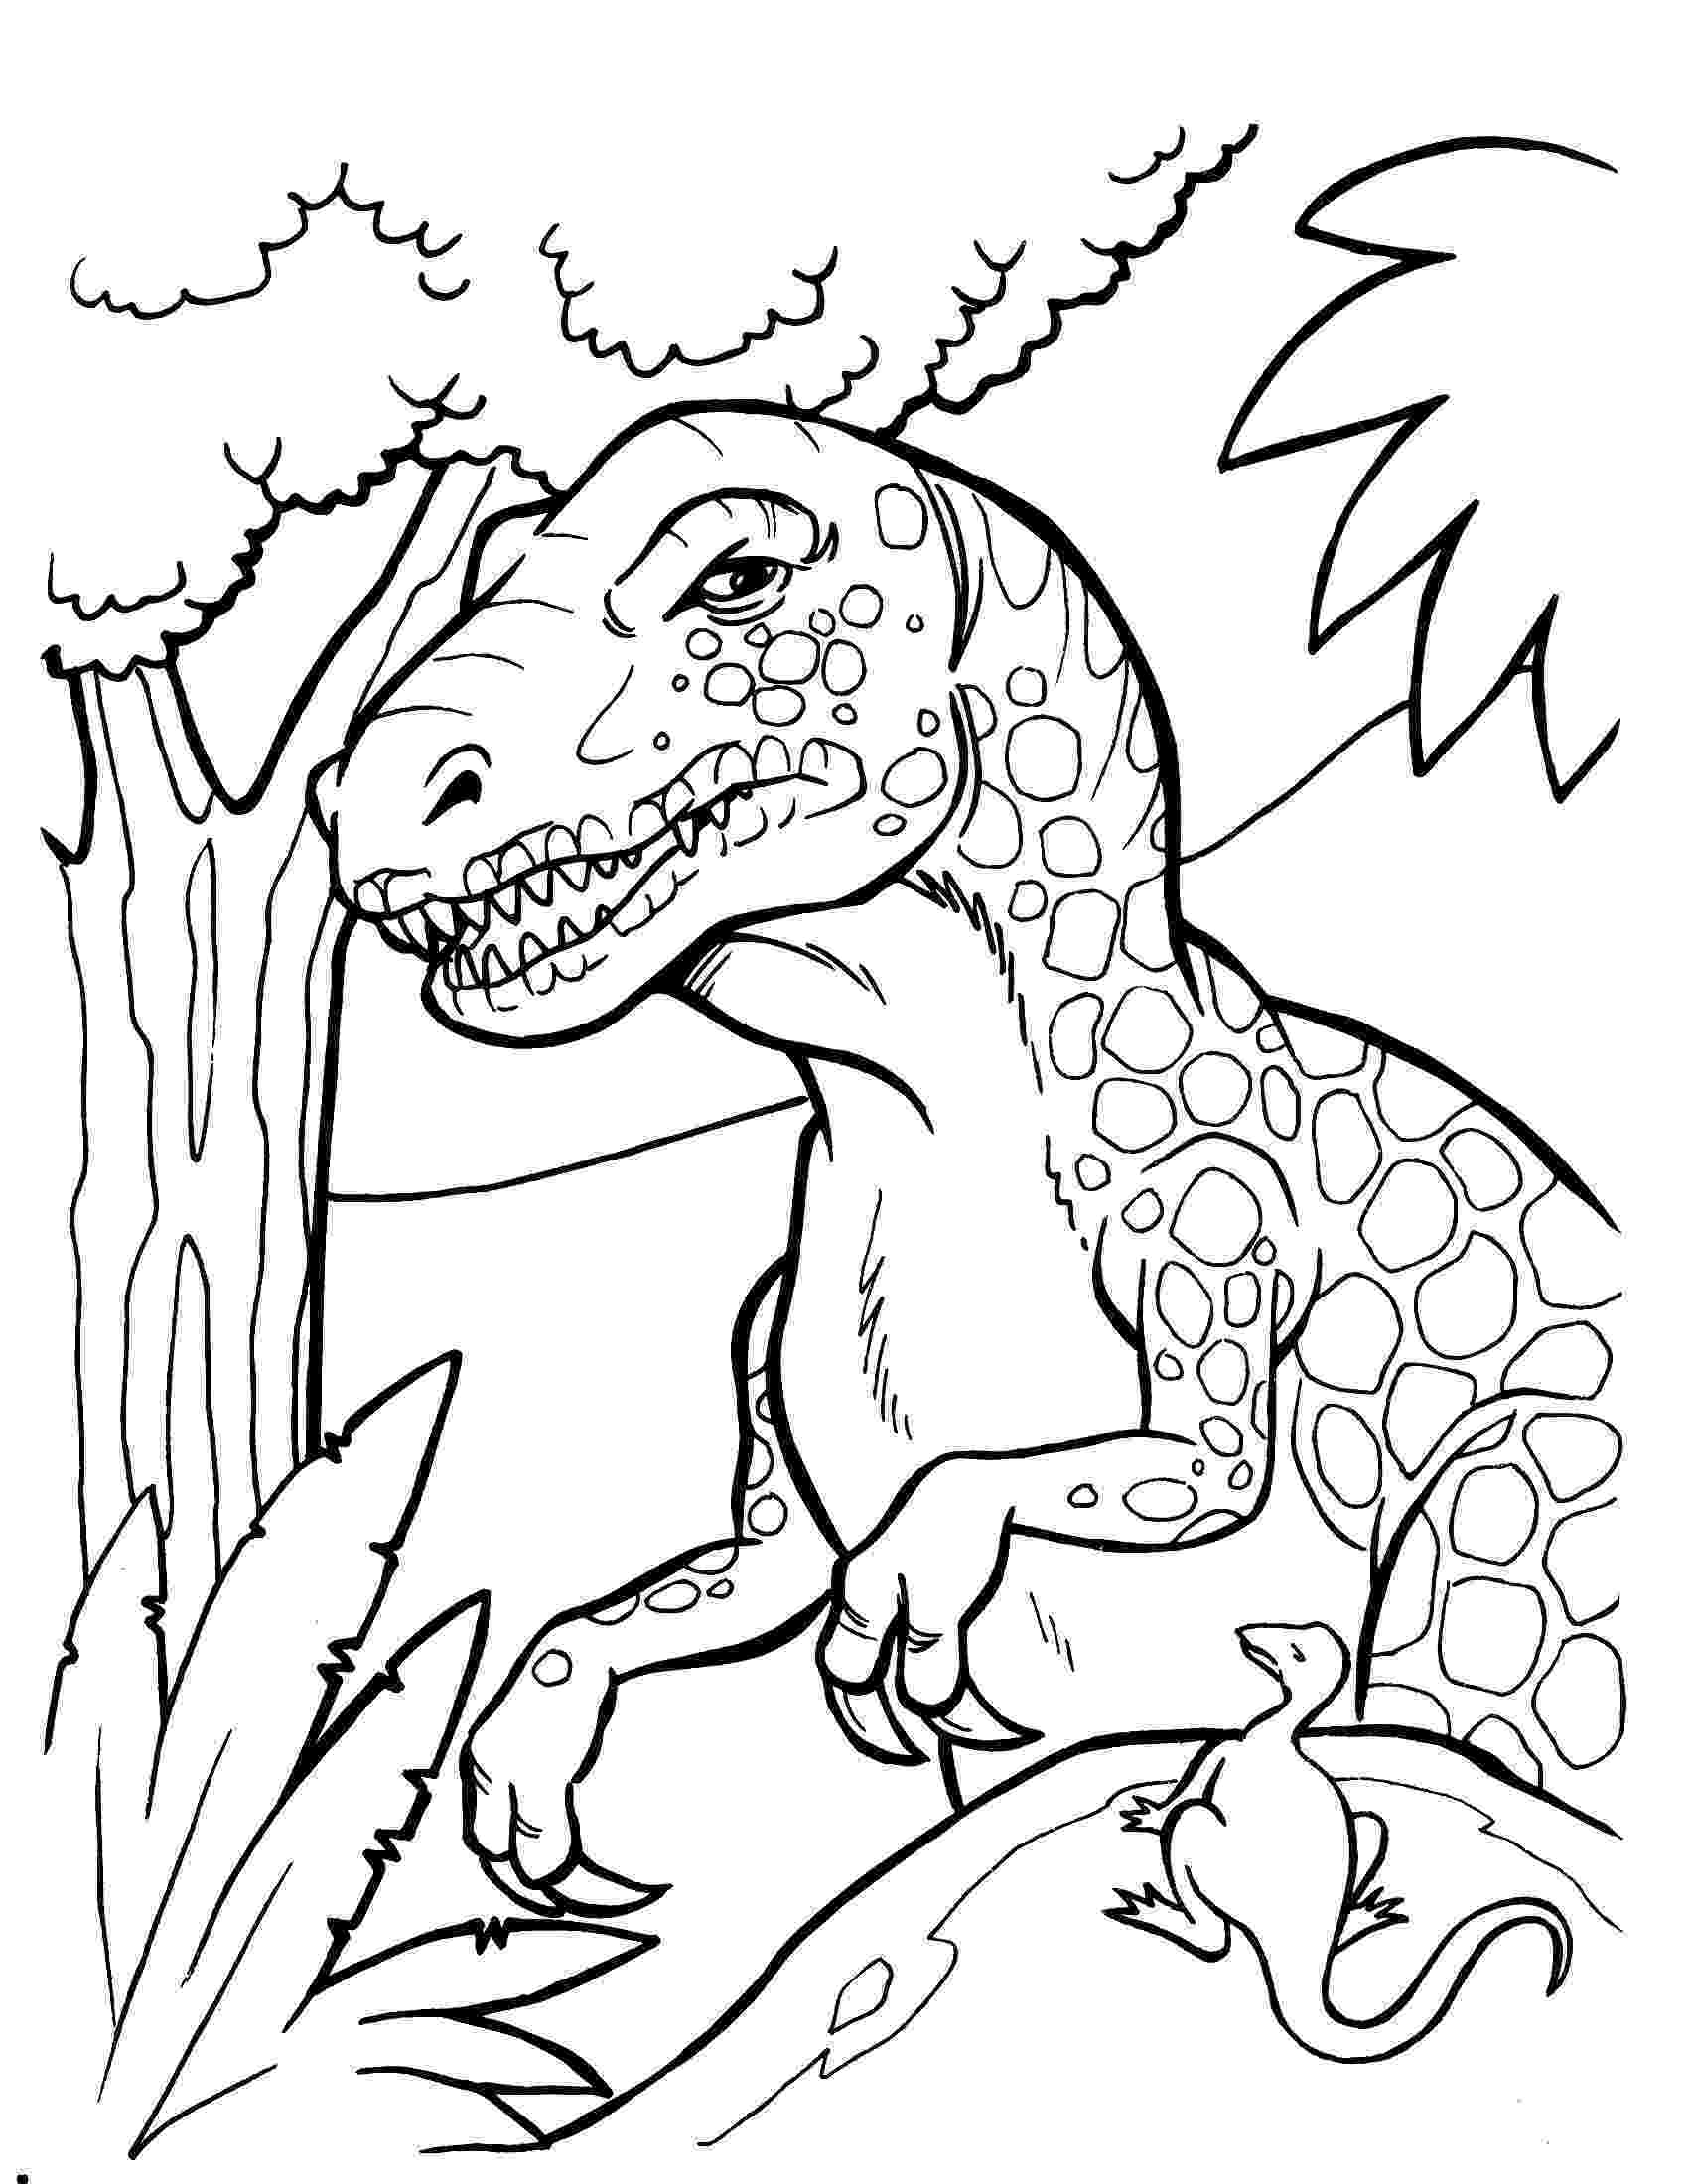 dinosaurs for coloring dinosaurs coloring pages collection free coloring sheets dinosaurs coloring for